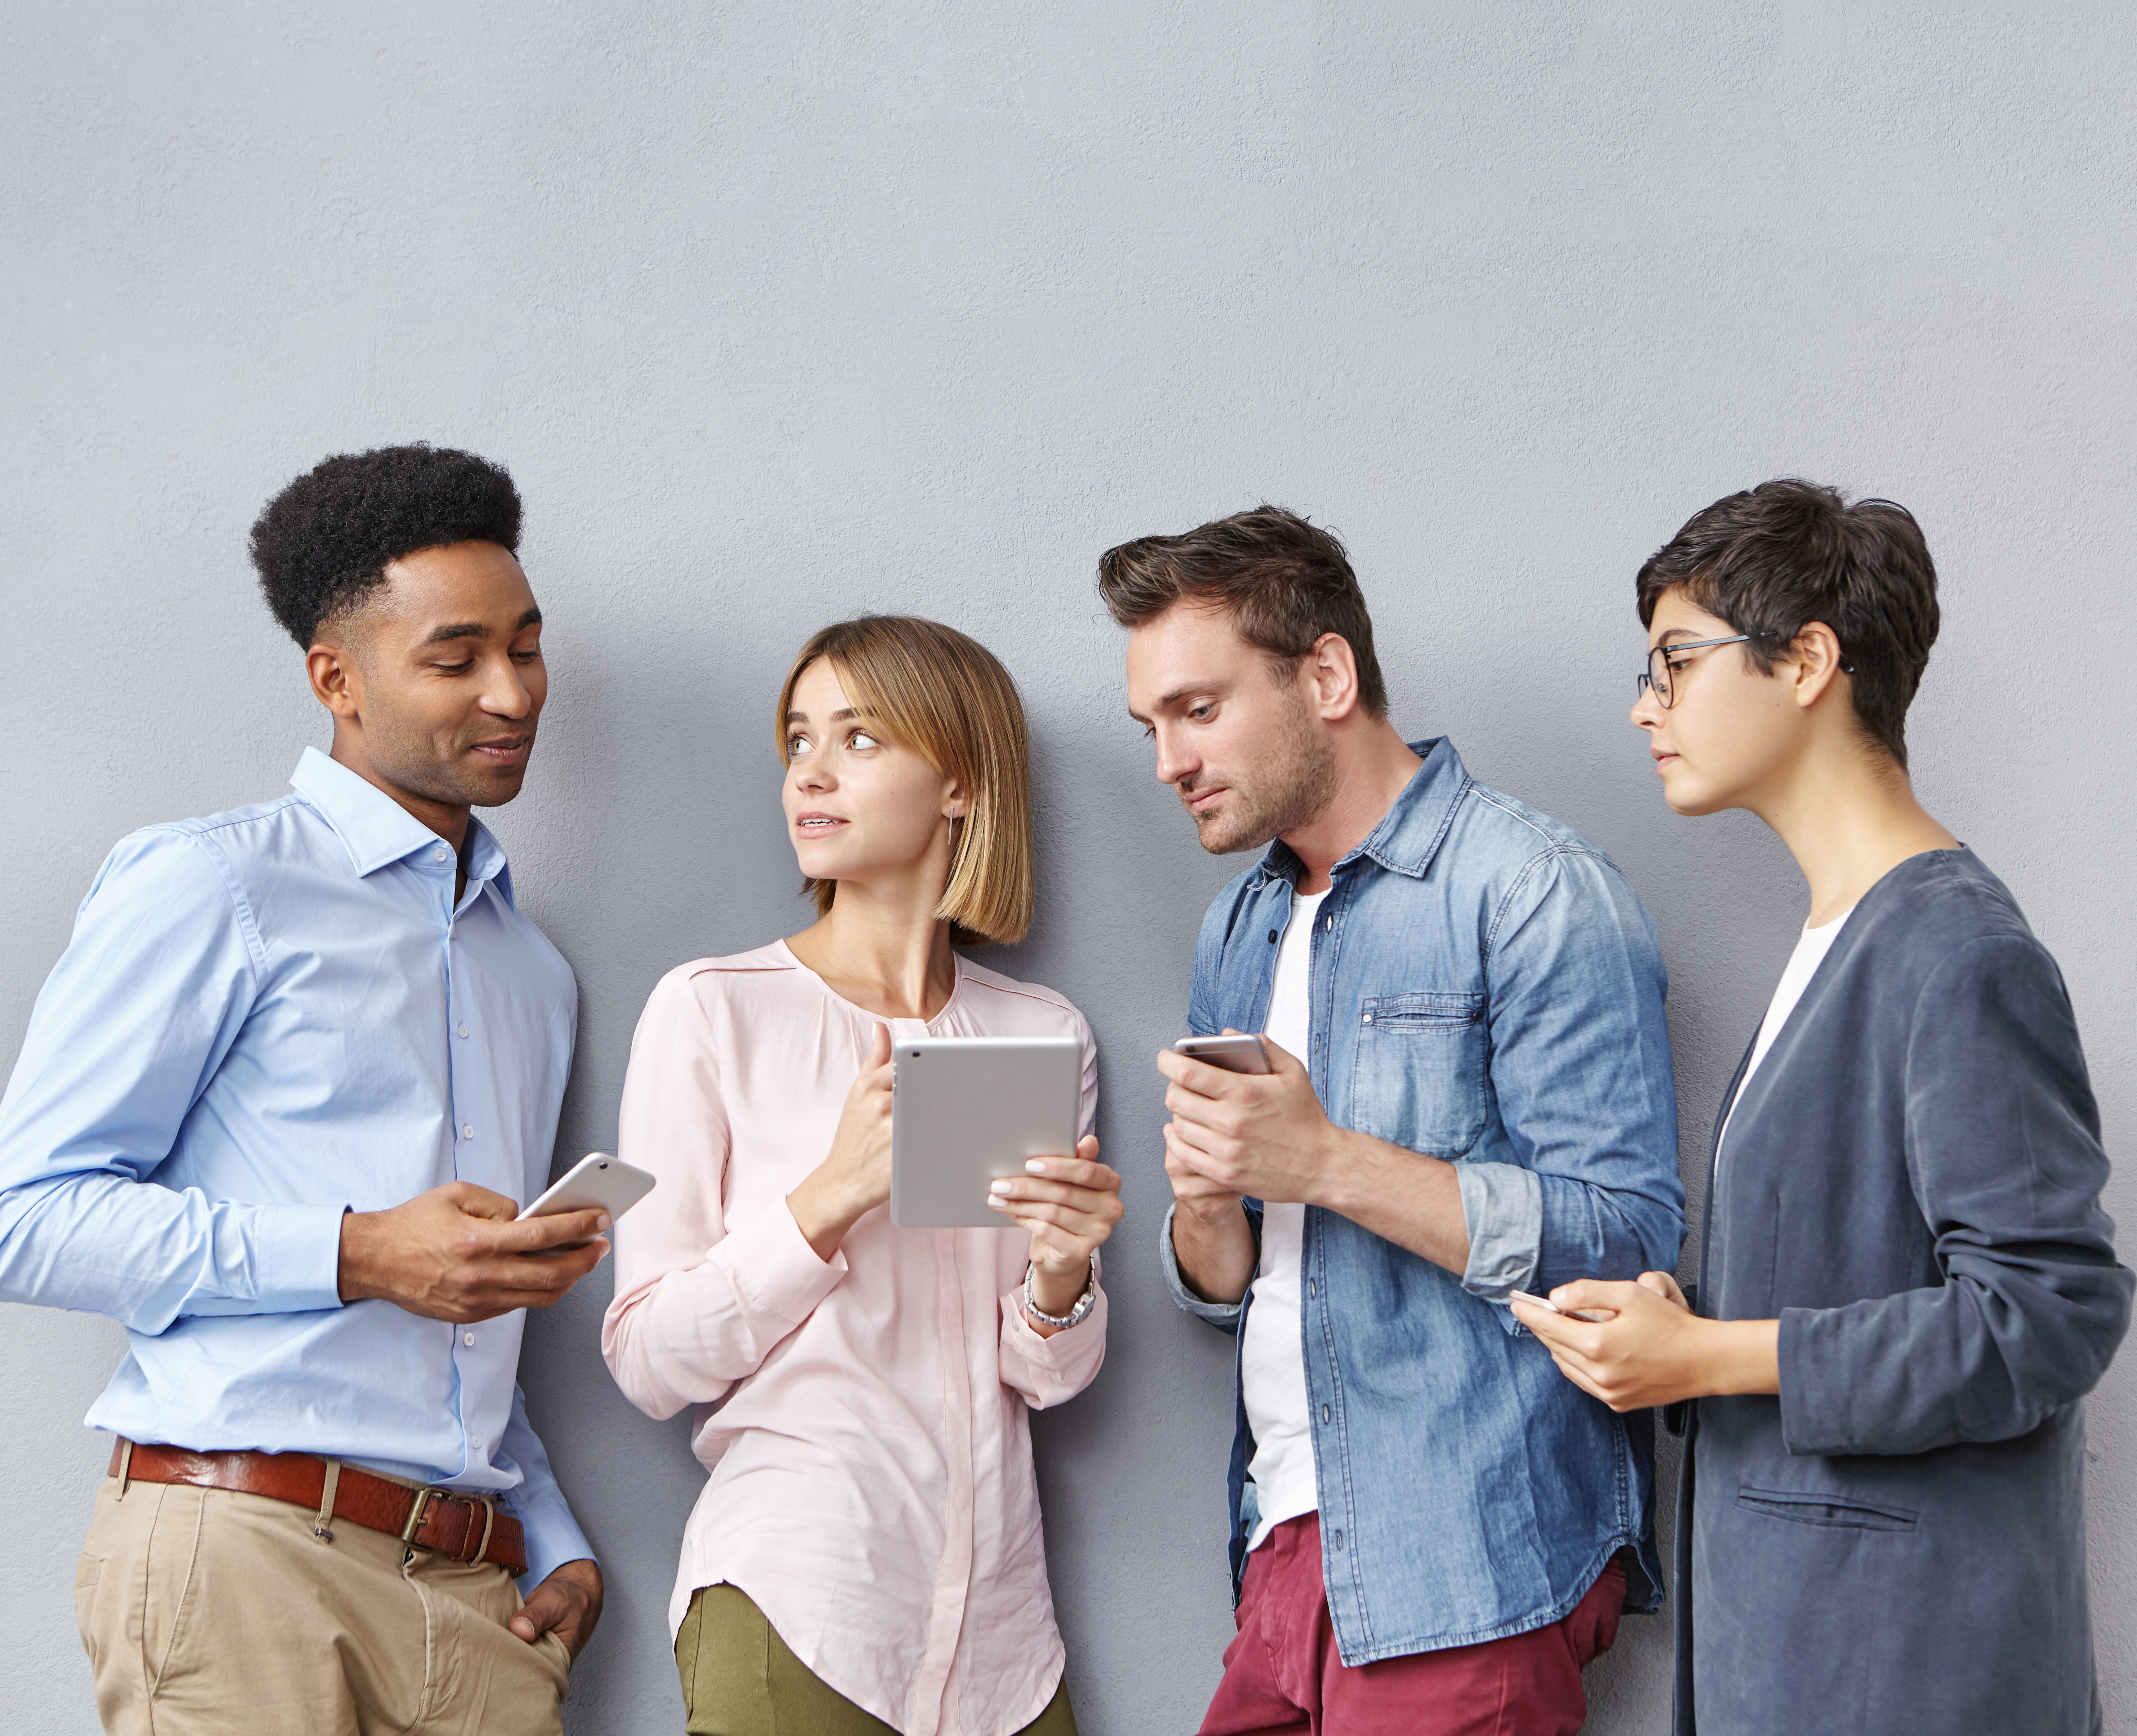 Modern education, business, startup, friendship and teamwork concept. International team of diverse ambitious talented young people standing in line in studio, using electronic gadgets and talking